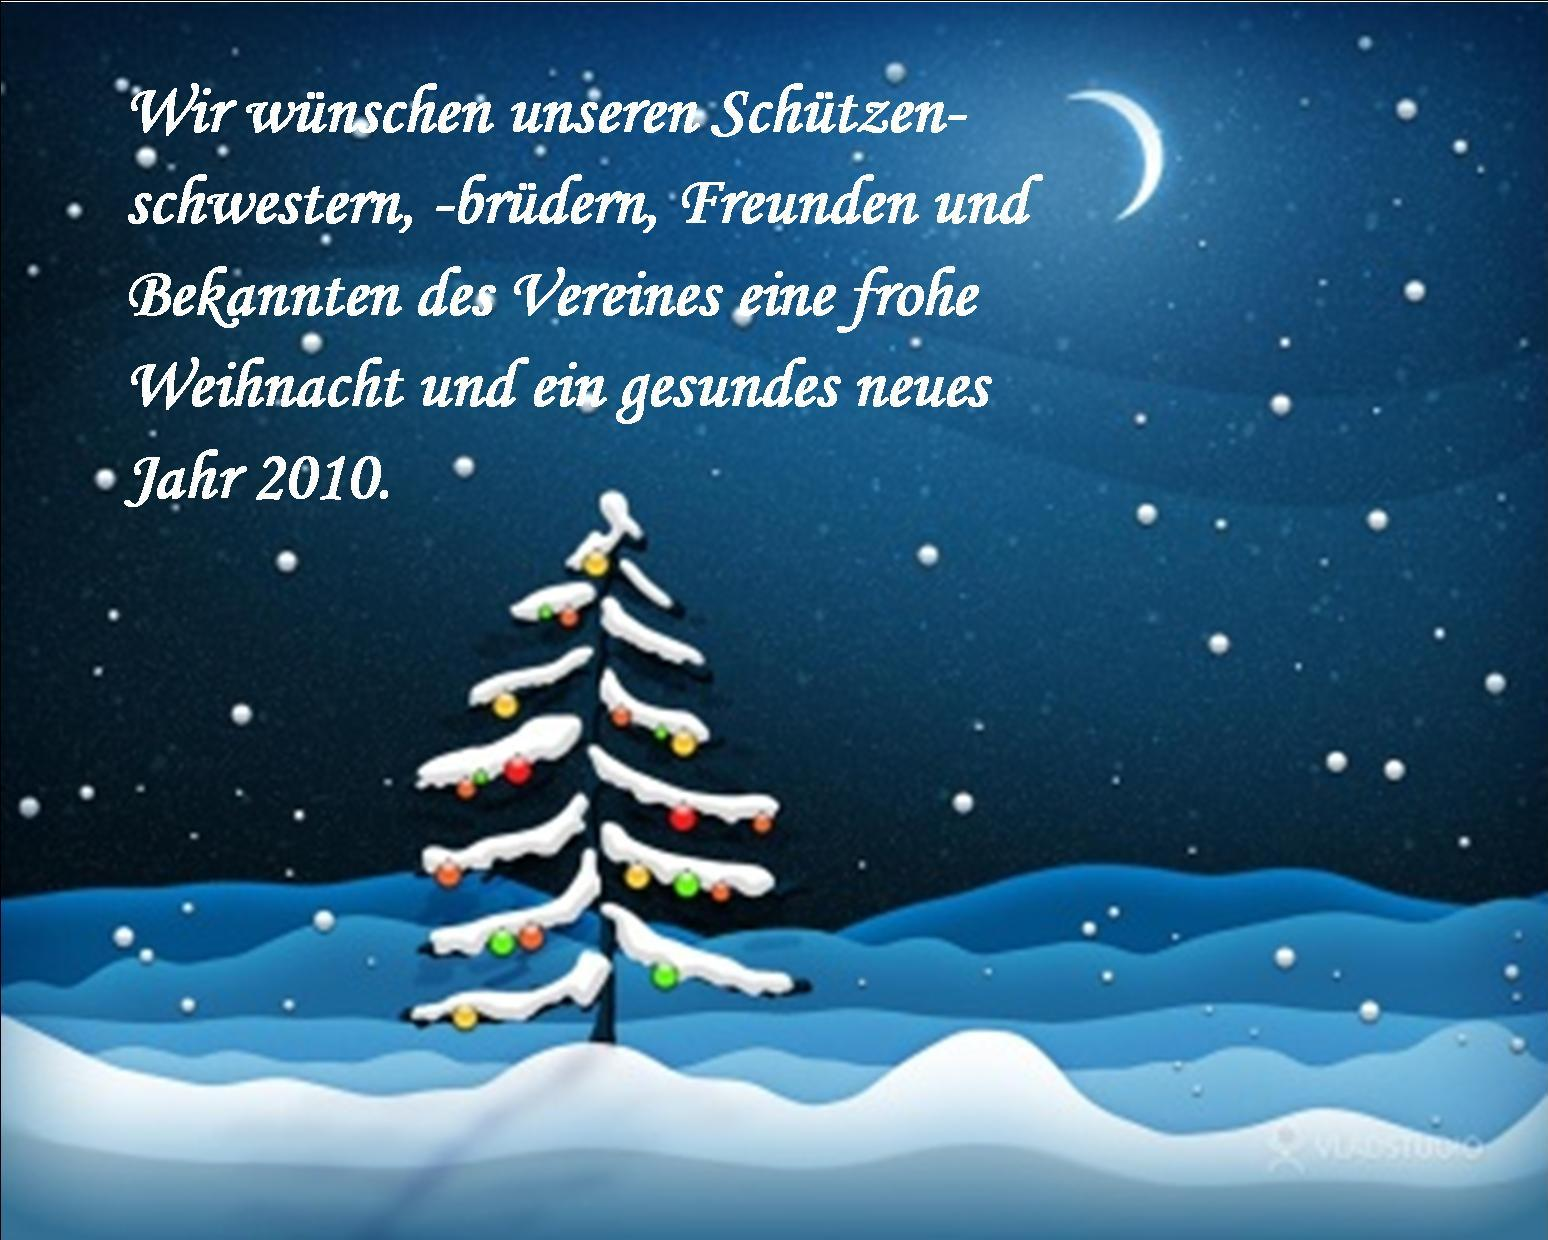 press_2009_frohe_Weihnachten